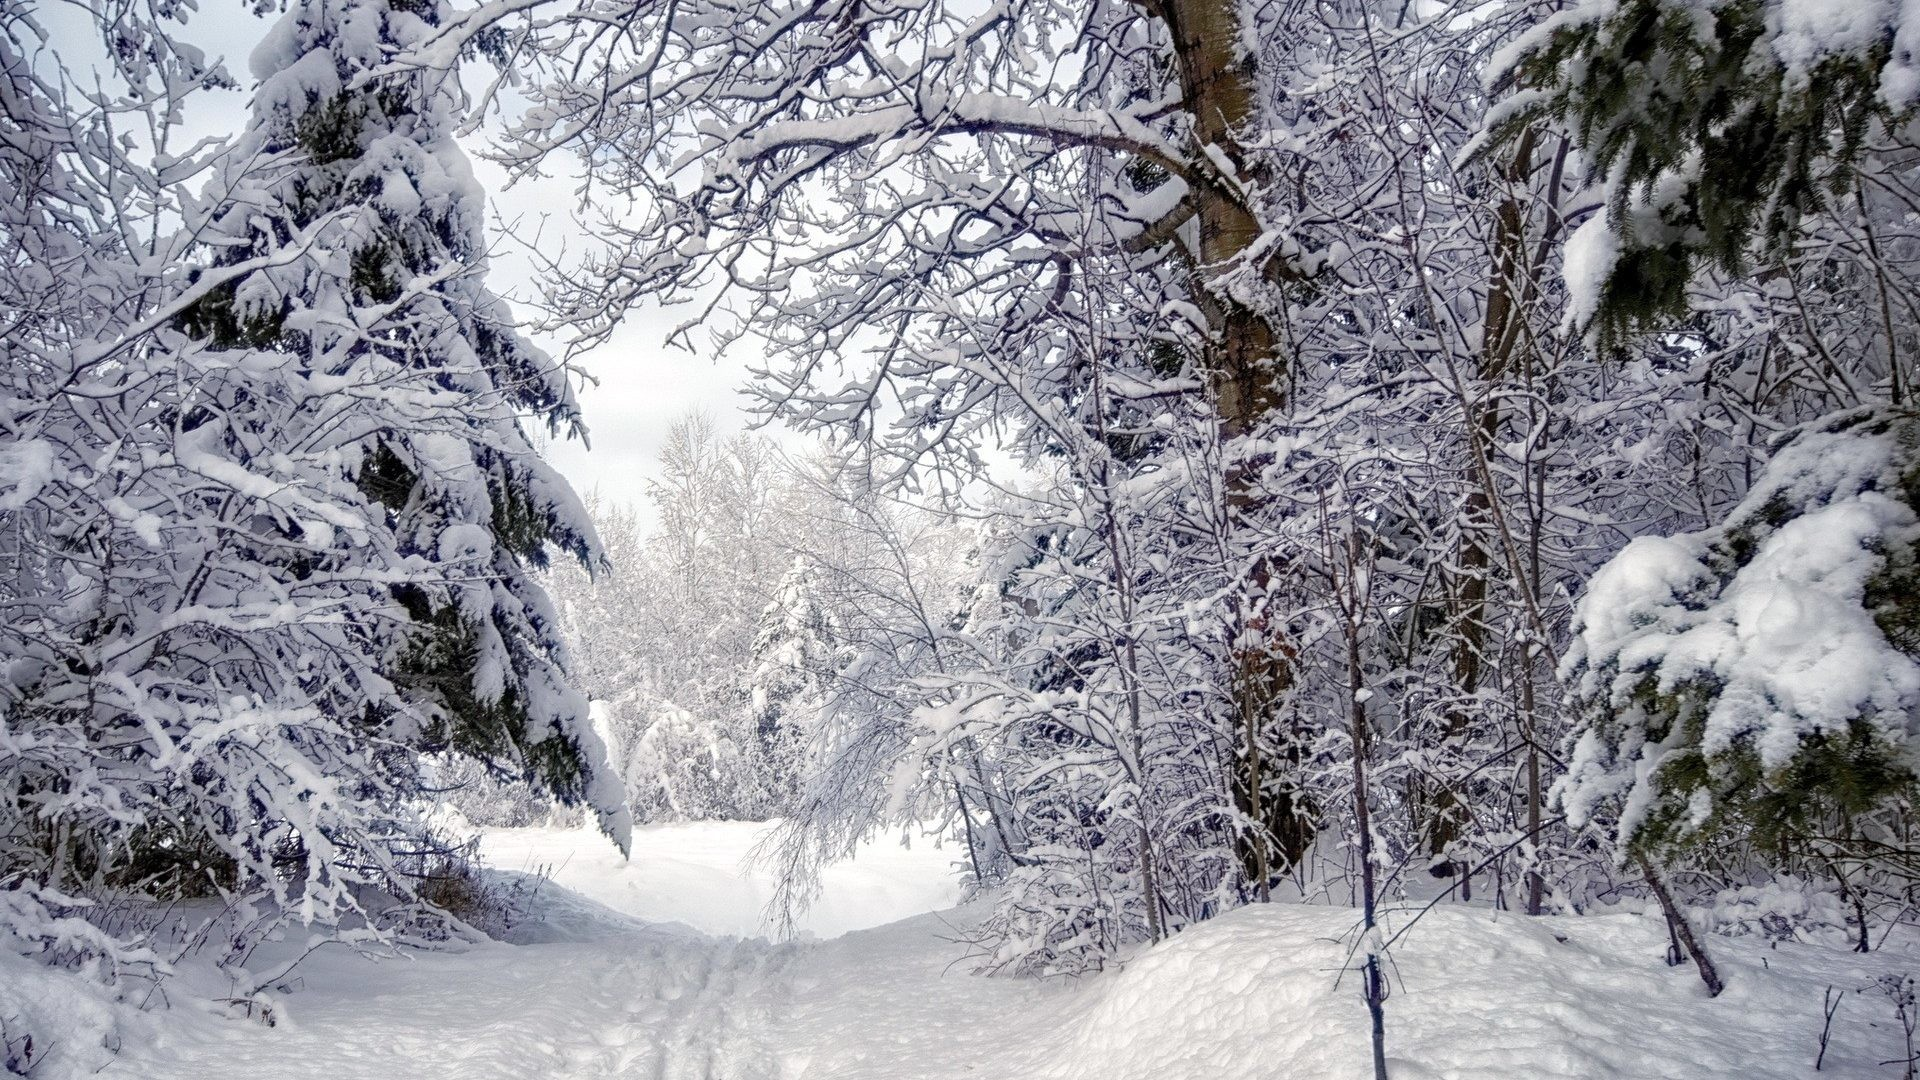 1920x1080 Winter Forest Snow Trees Path Desktop Animated Wallpaper Free